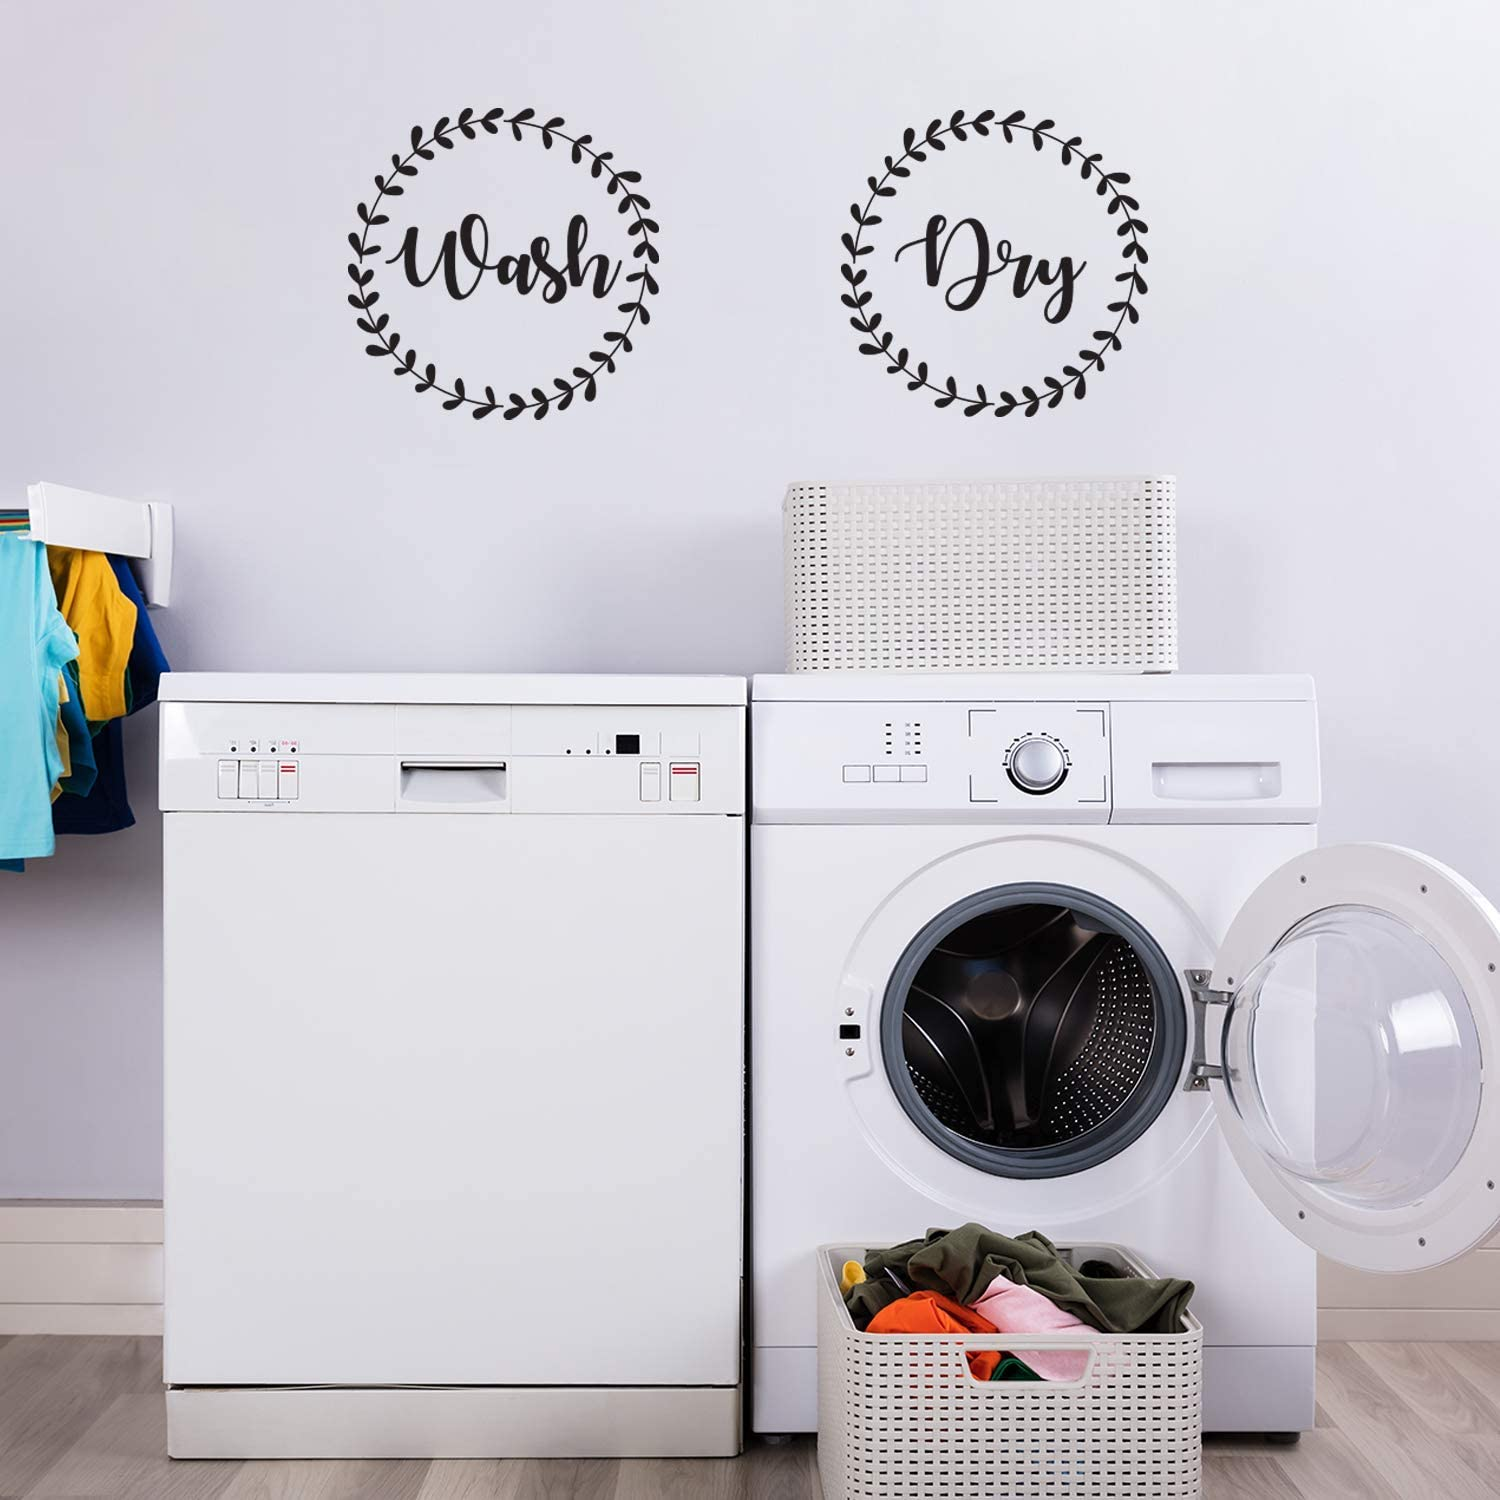 "Vinyl Wall Art Decal - Wash Dry - 15"" x 15"" Each - Modern Trendy Cute Washer Quote for Home Apartment Washing Machine Dryer Laundry Room Closet Chores Indoor Outdoor Decoration (Black)"